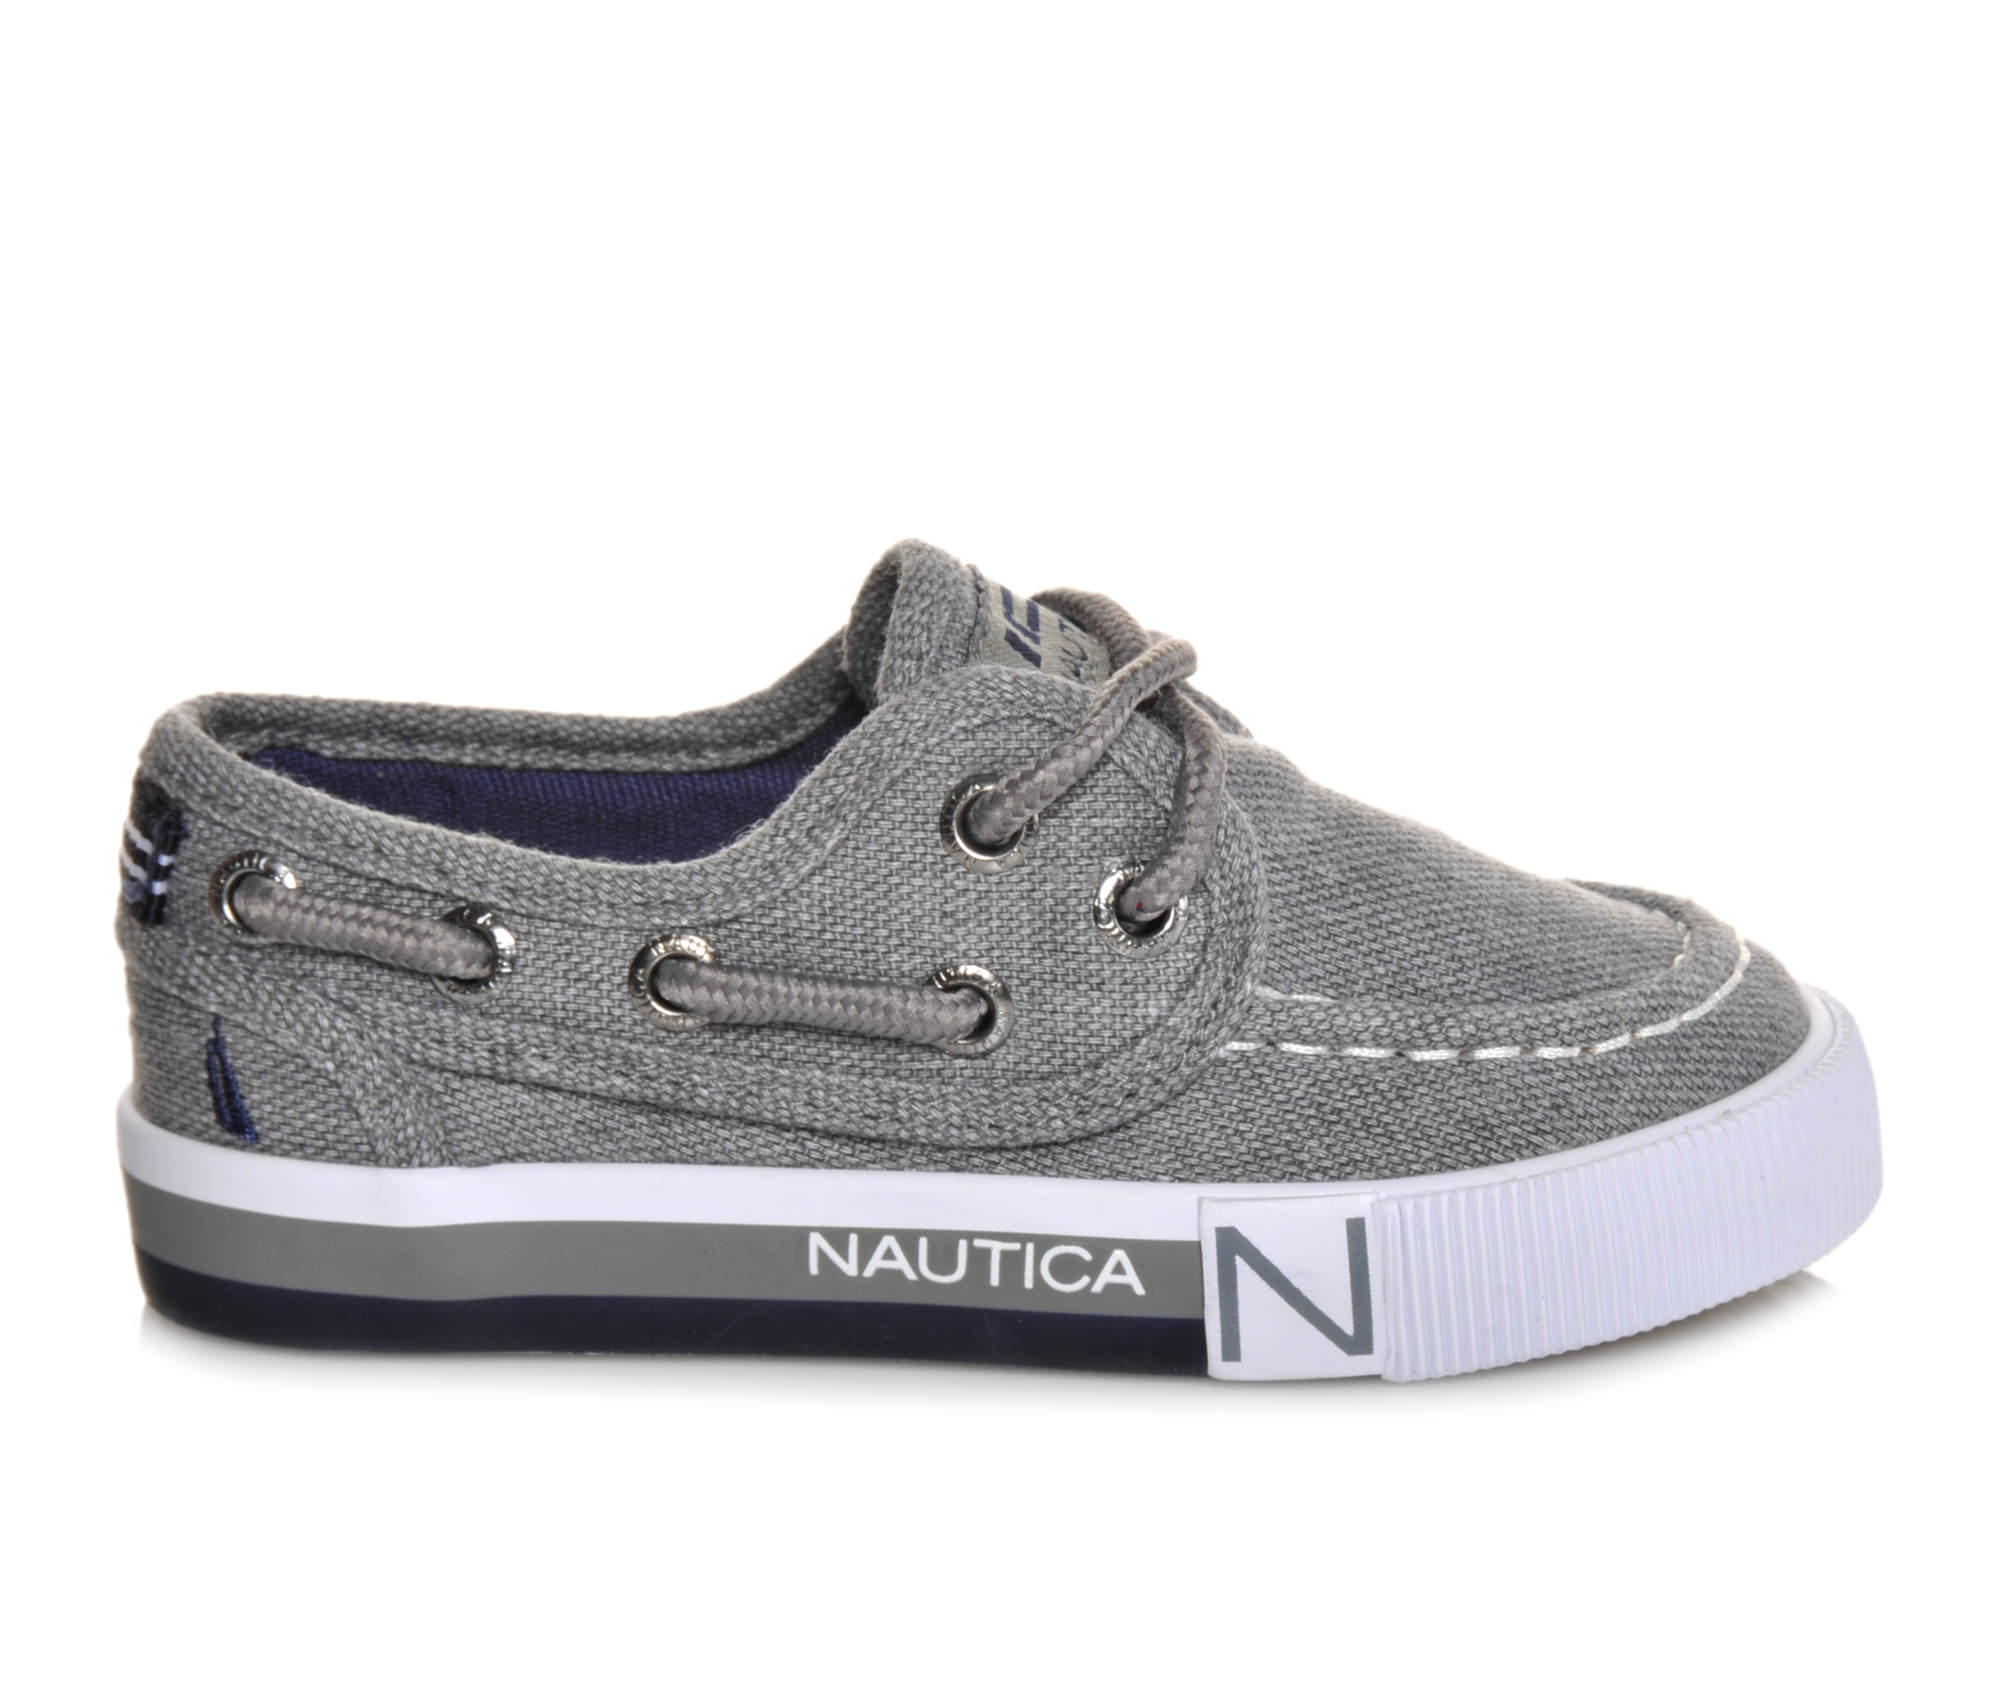 Boys' Nautica Spinnaker Toddler Boat Shoes (Grey)